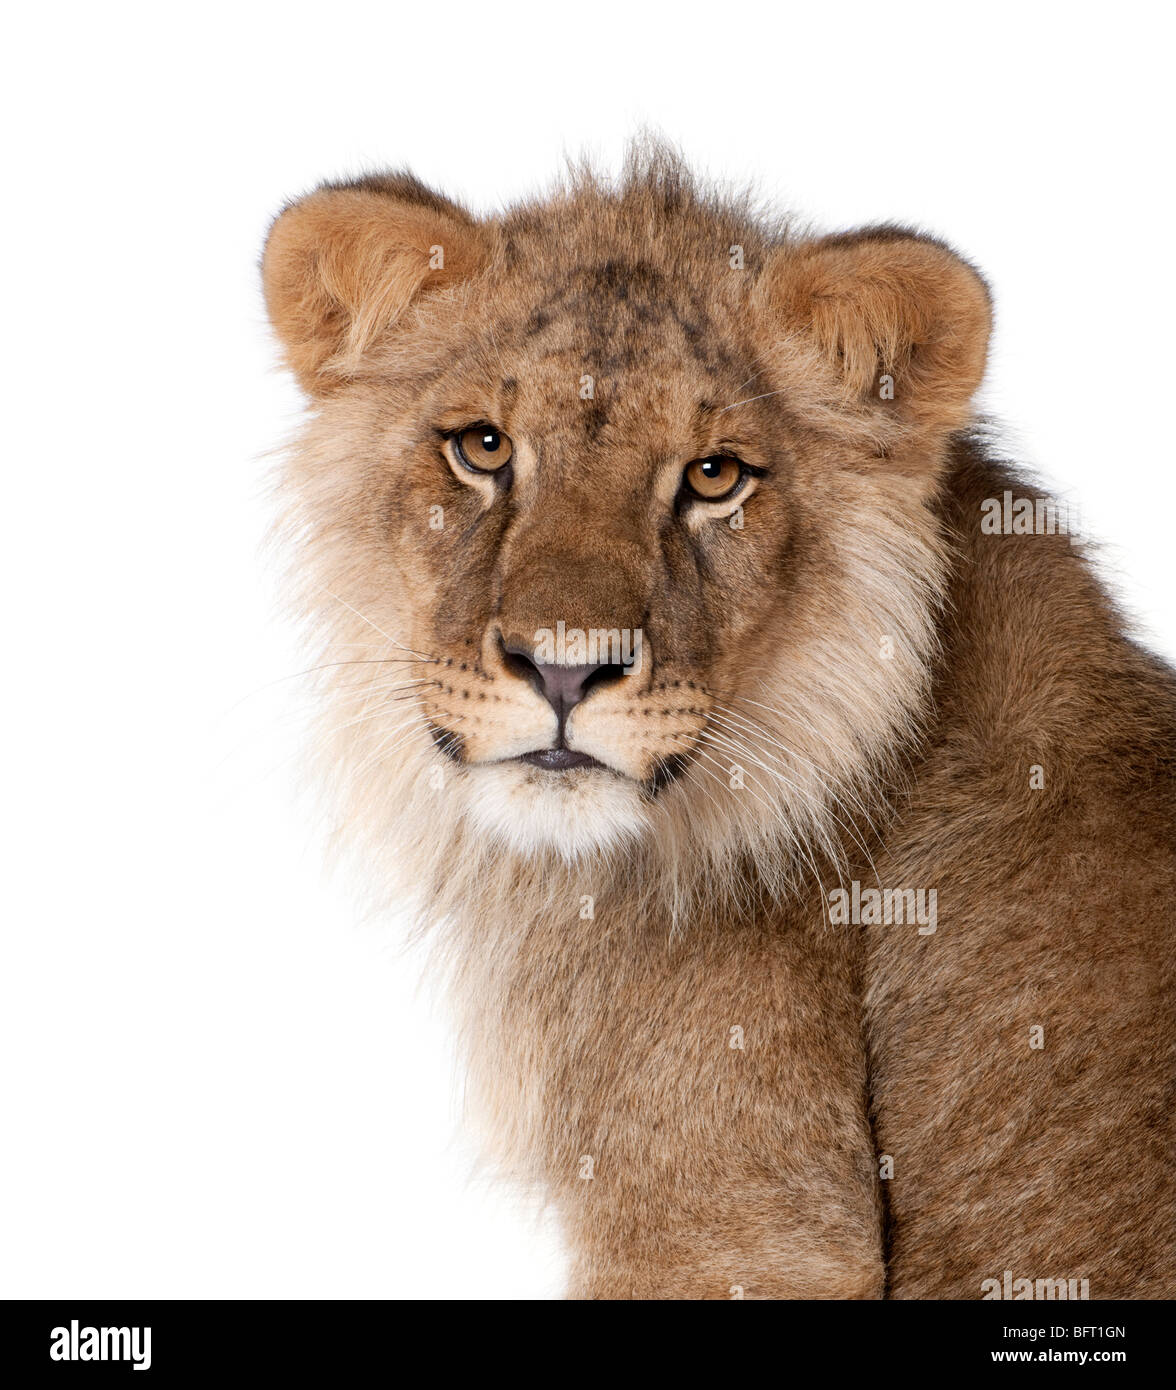 Lion, Panthera leo, 9 mois, devant un fond blanc, studio shot Photo Stock